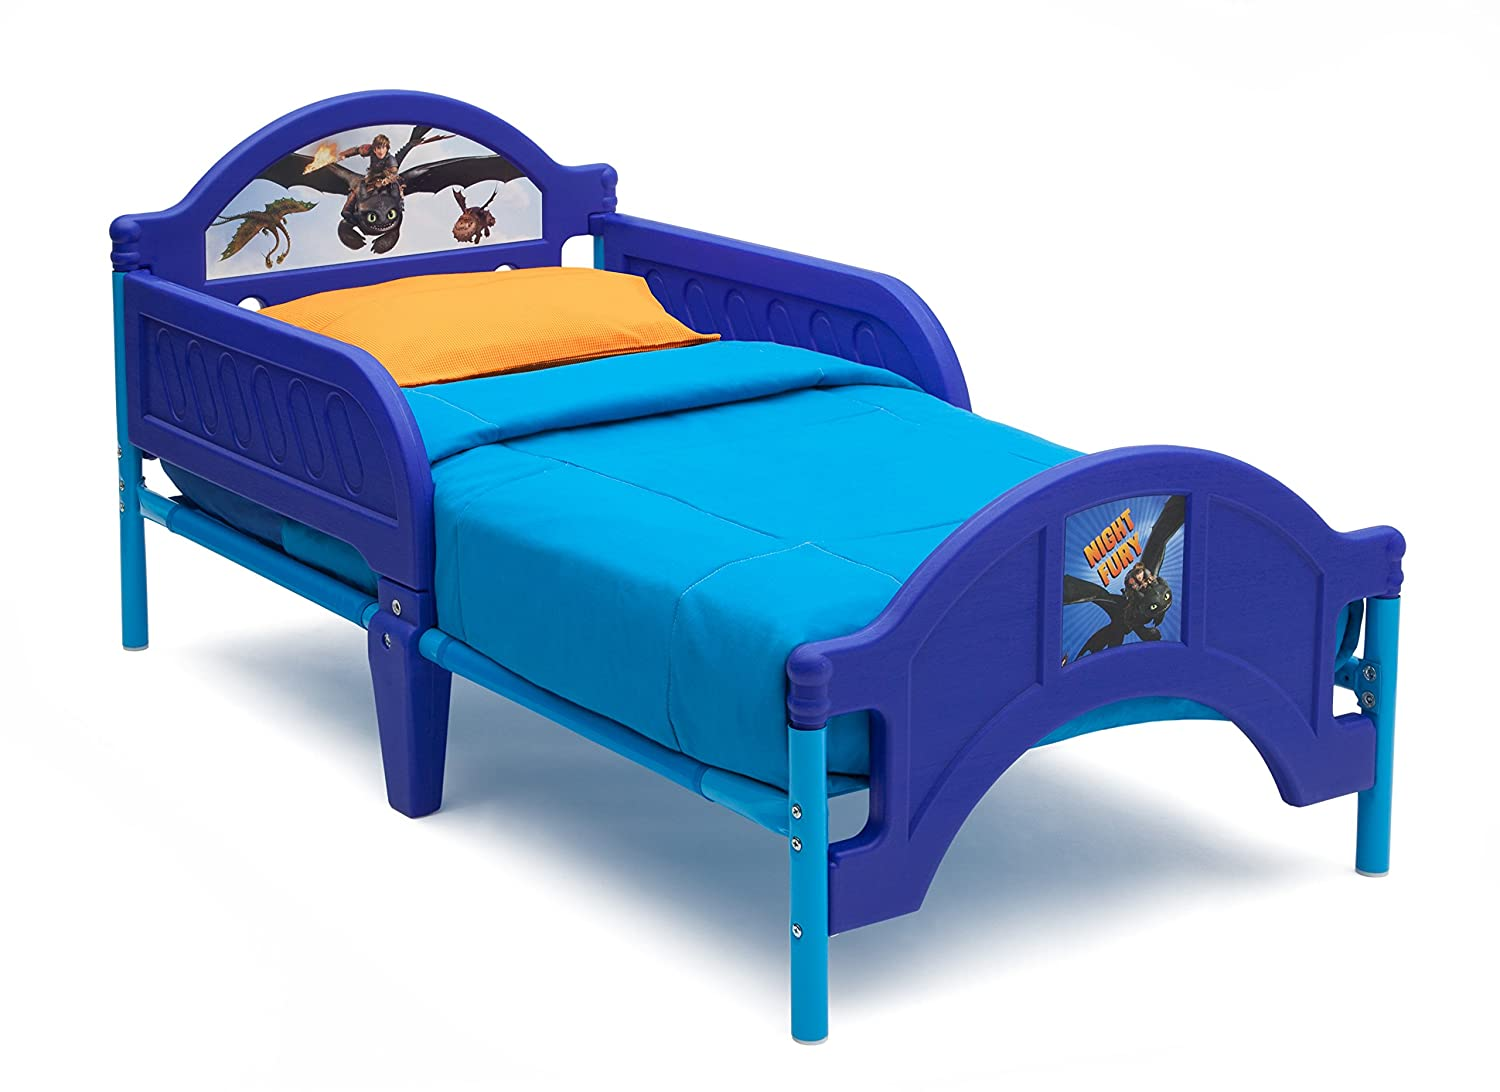 Delta Children Plastic Toddler Bed, DreamWorks How to Train Your Dragon 2